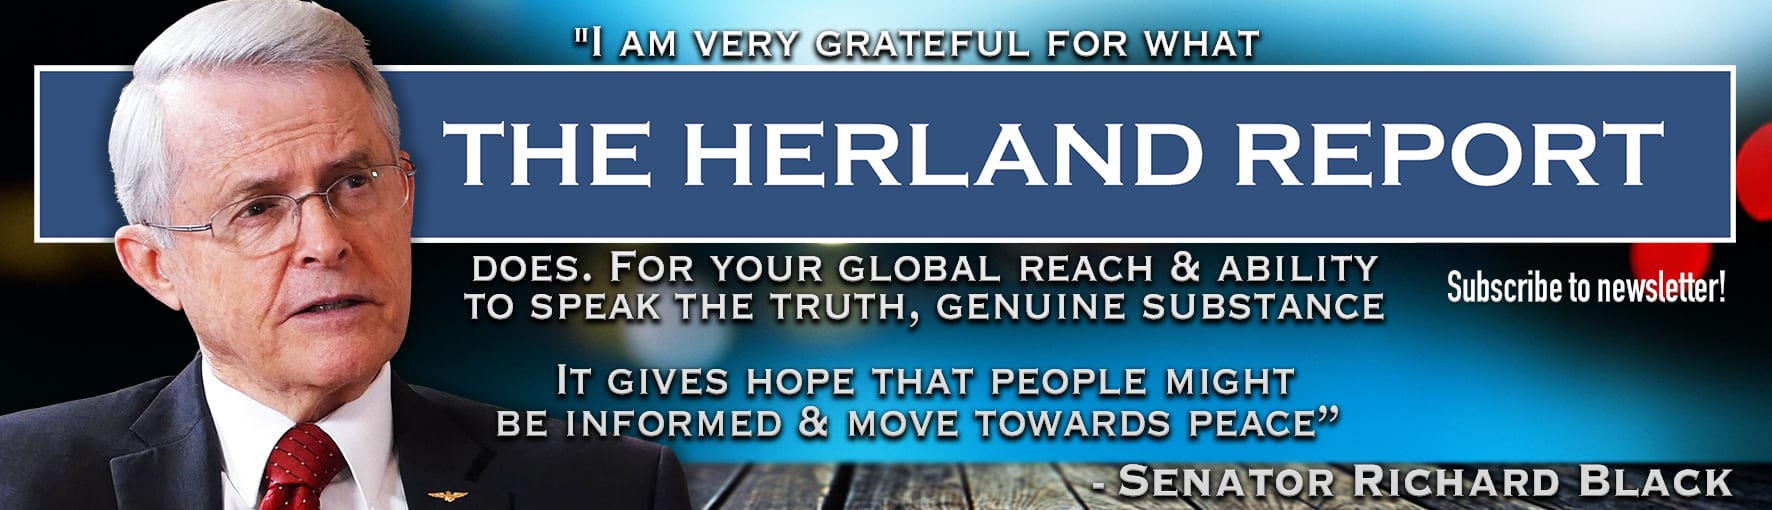 Why Countries Collapse: Herland Report banner